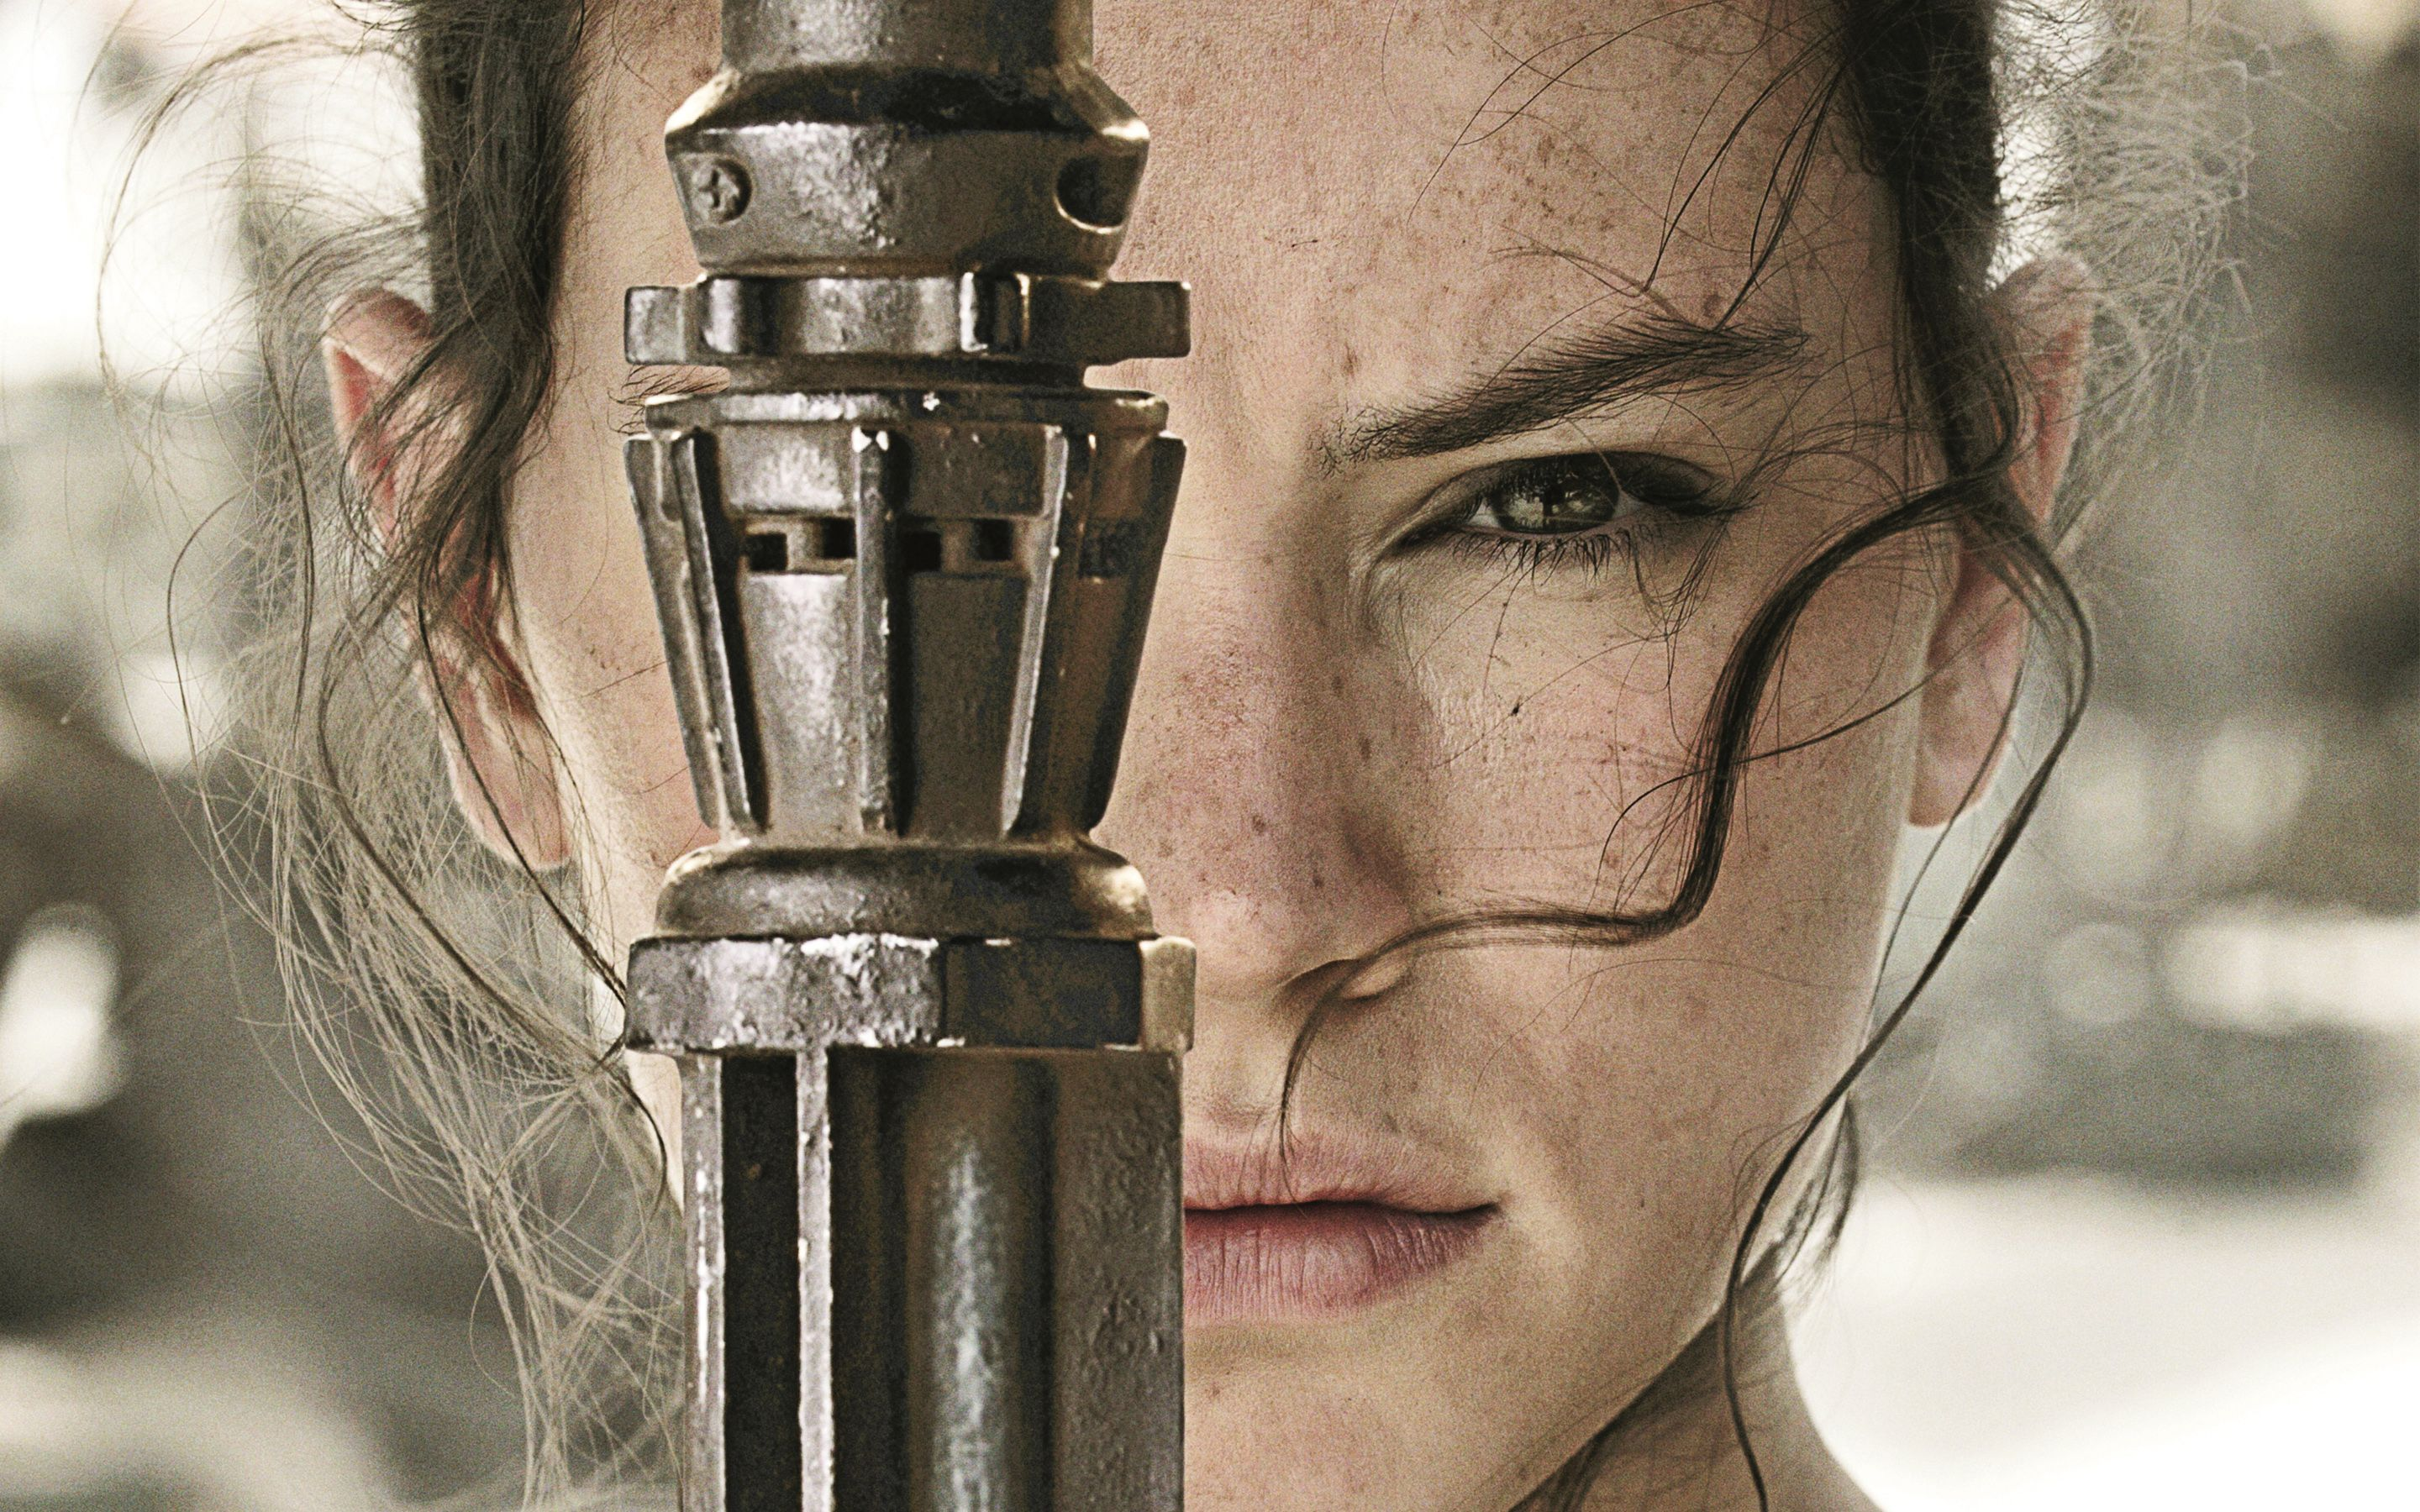 71 Rey (Star Wars) HD Wallpapers | Backgrounds - Wallpaper Abyss